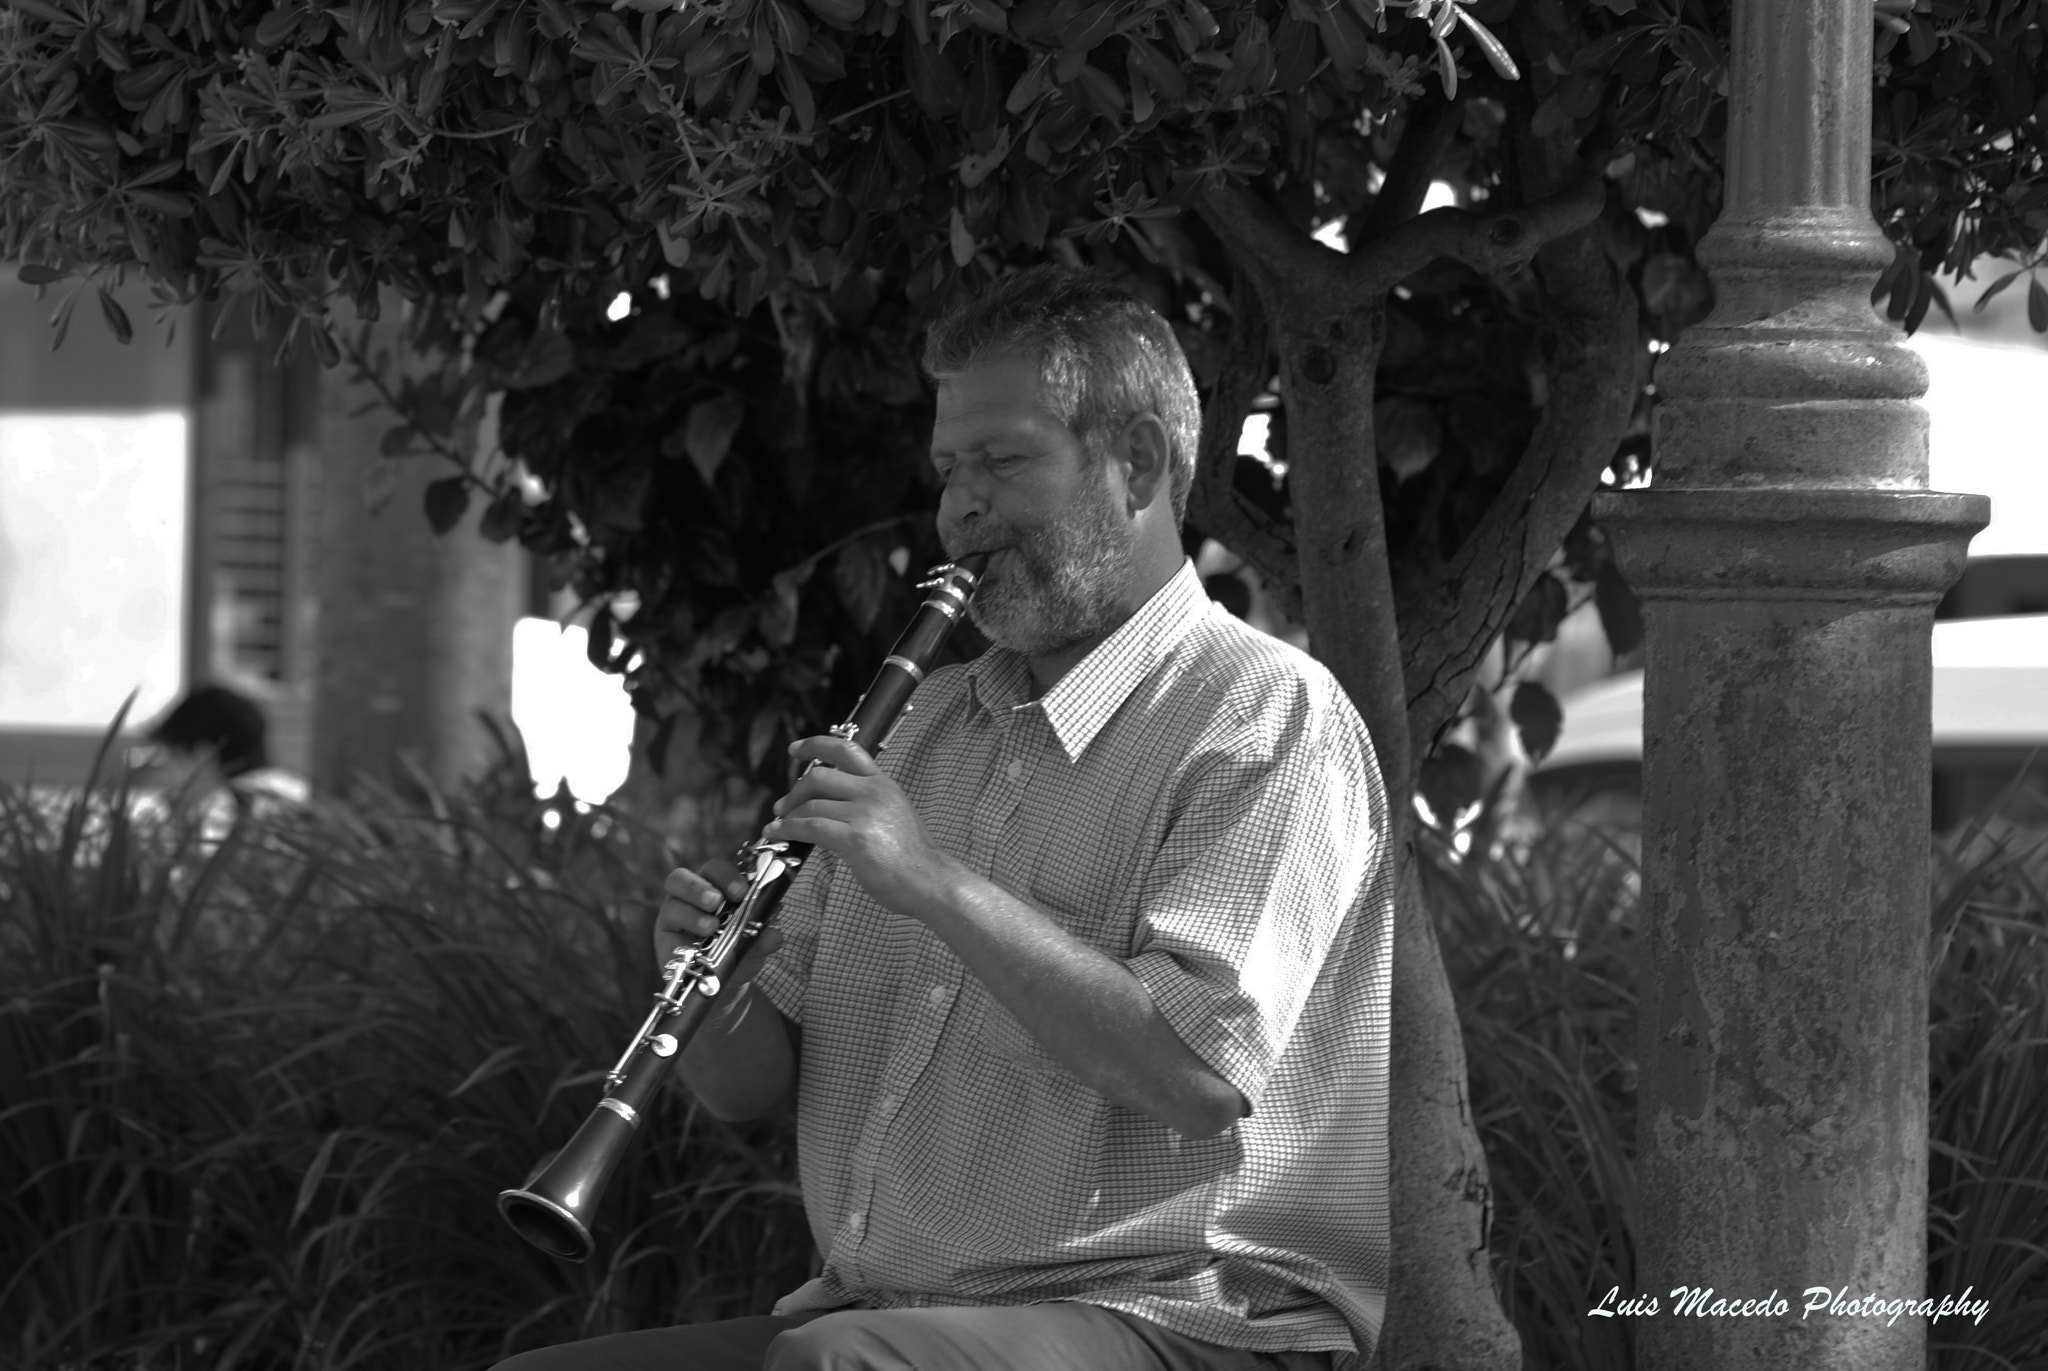 Photograph Tavira - Anonymous Musician by Luis Pereira on 500px